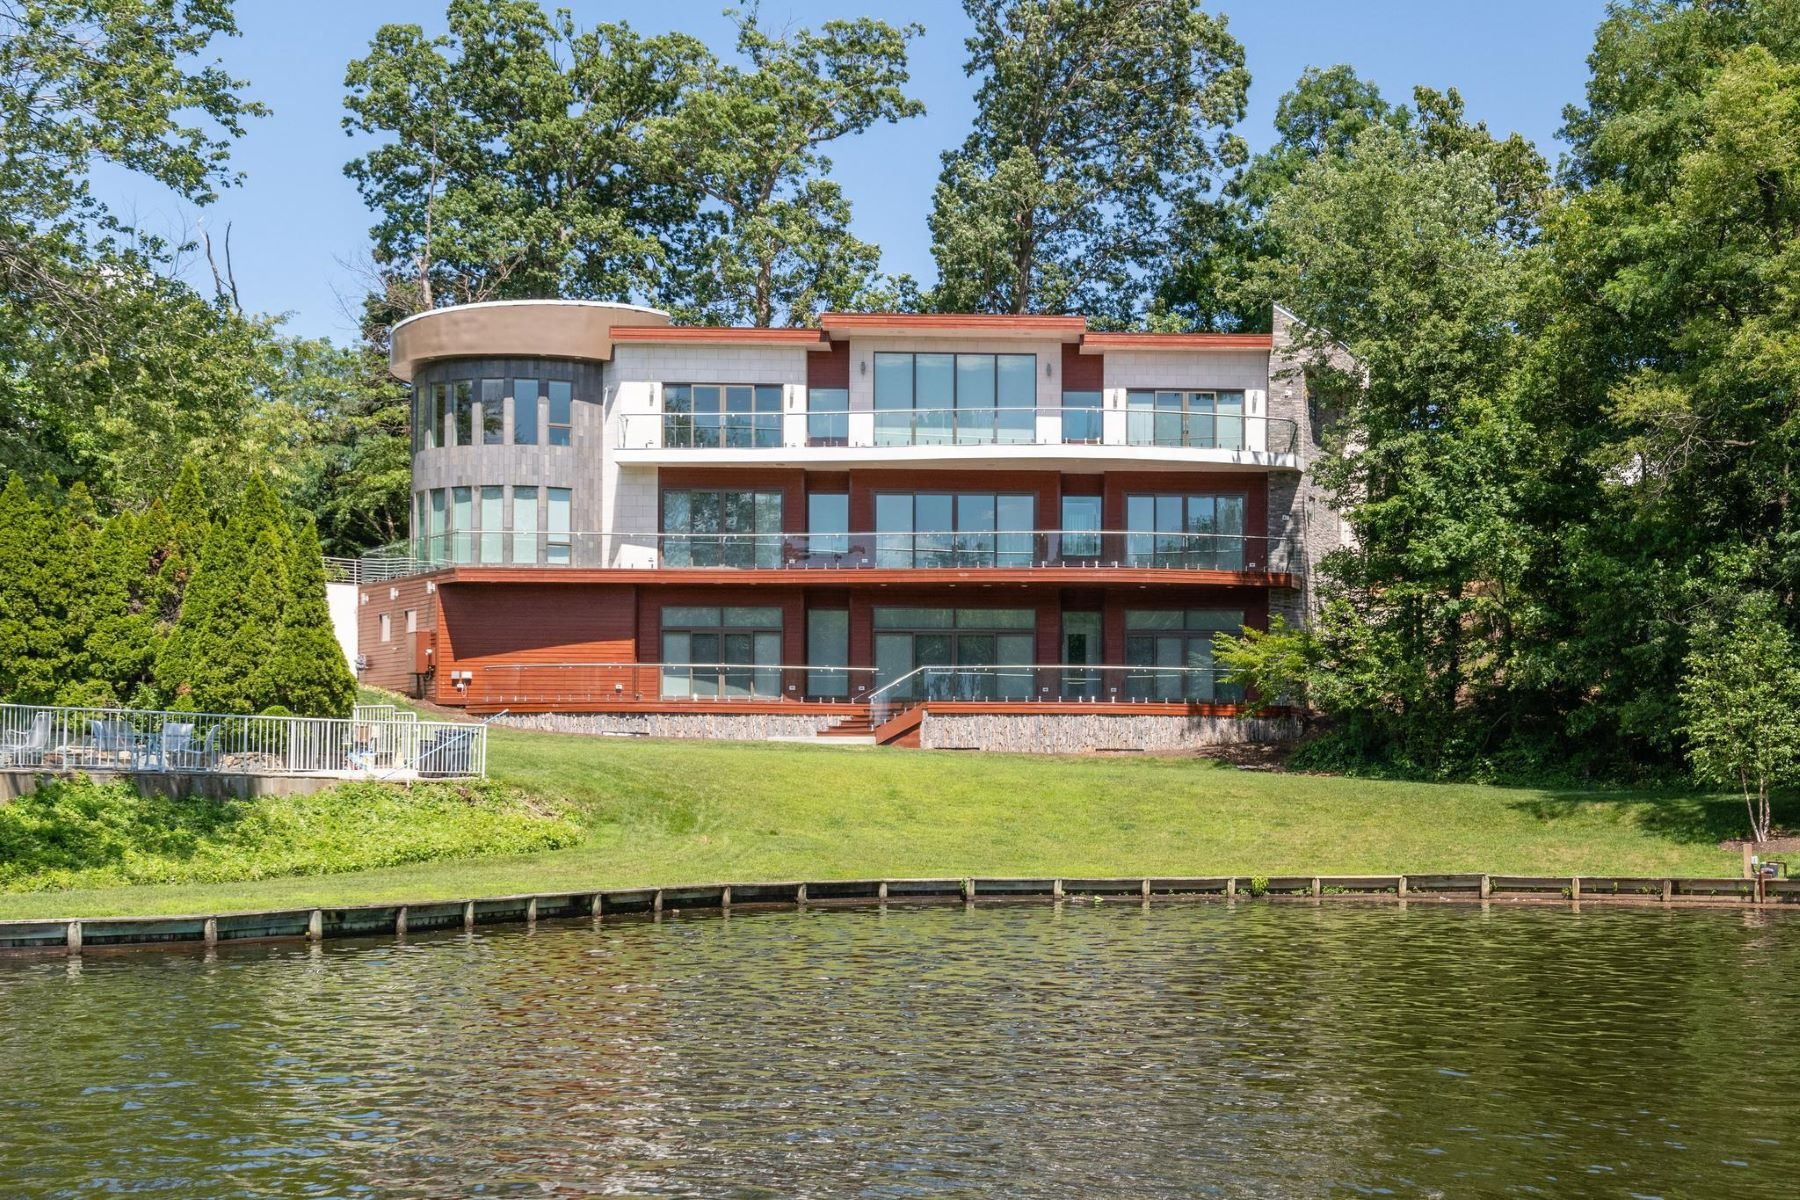 Single Family Homes for Sale at Falls Church, Virginia 22041 United States